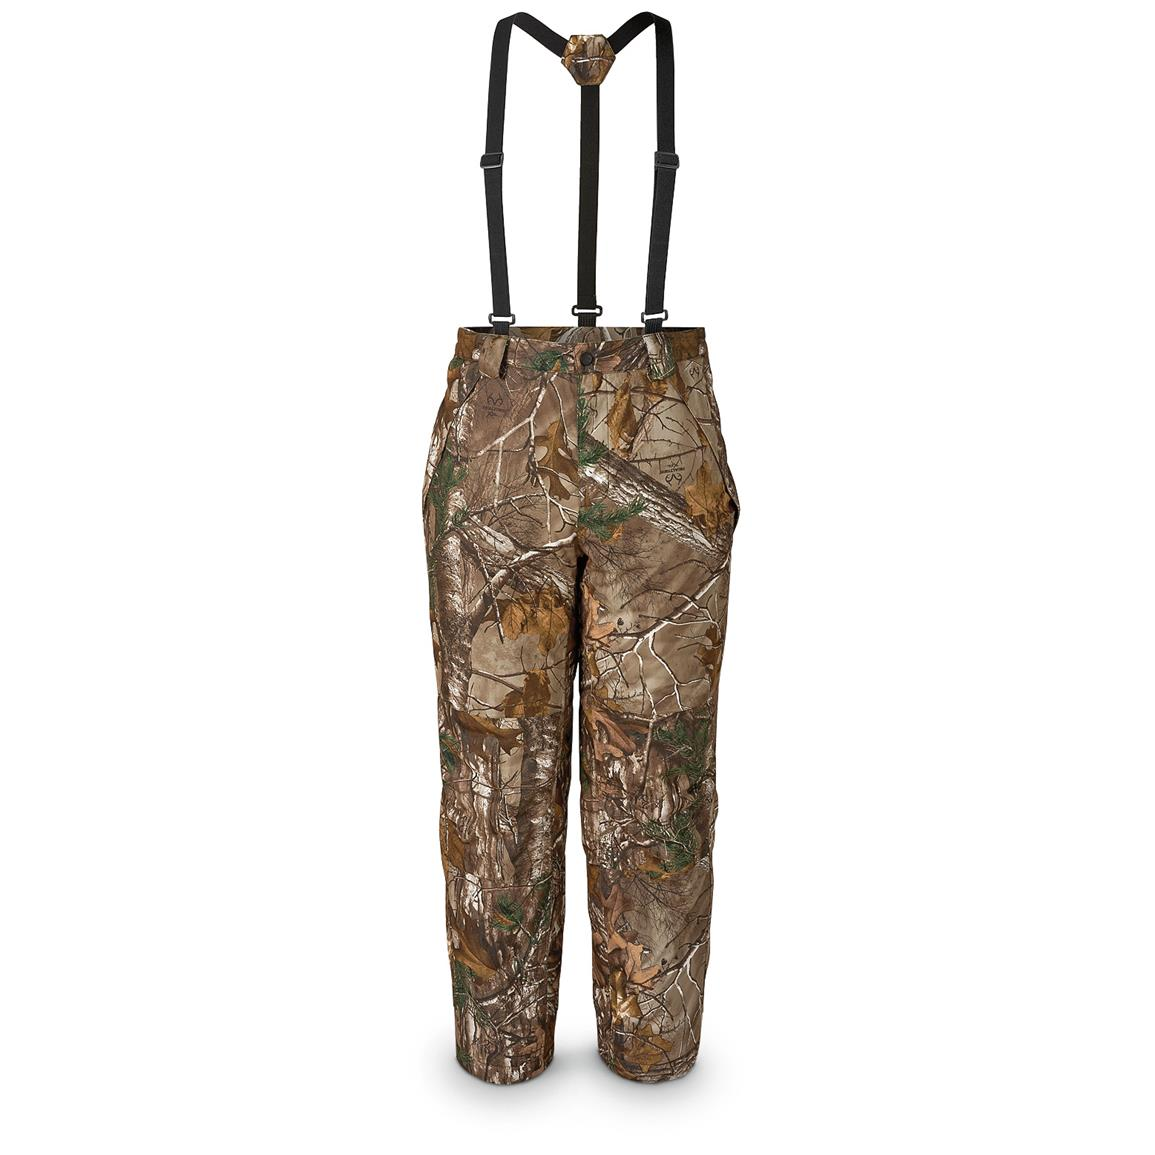 Scent-Lok Men's Waterproof ThunderTek Pants, Realtree Xtra